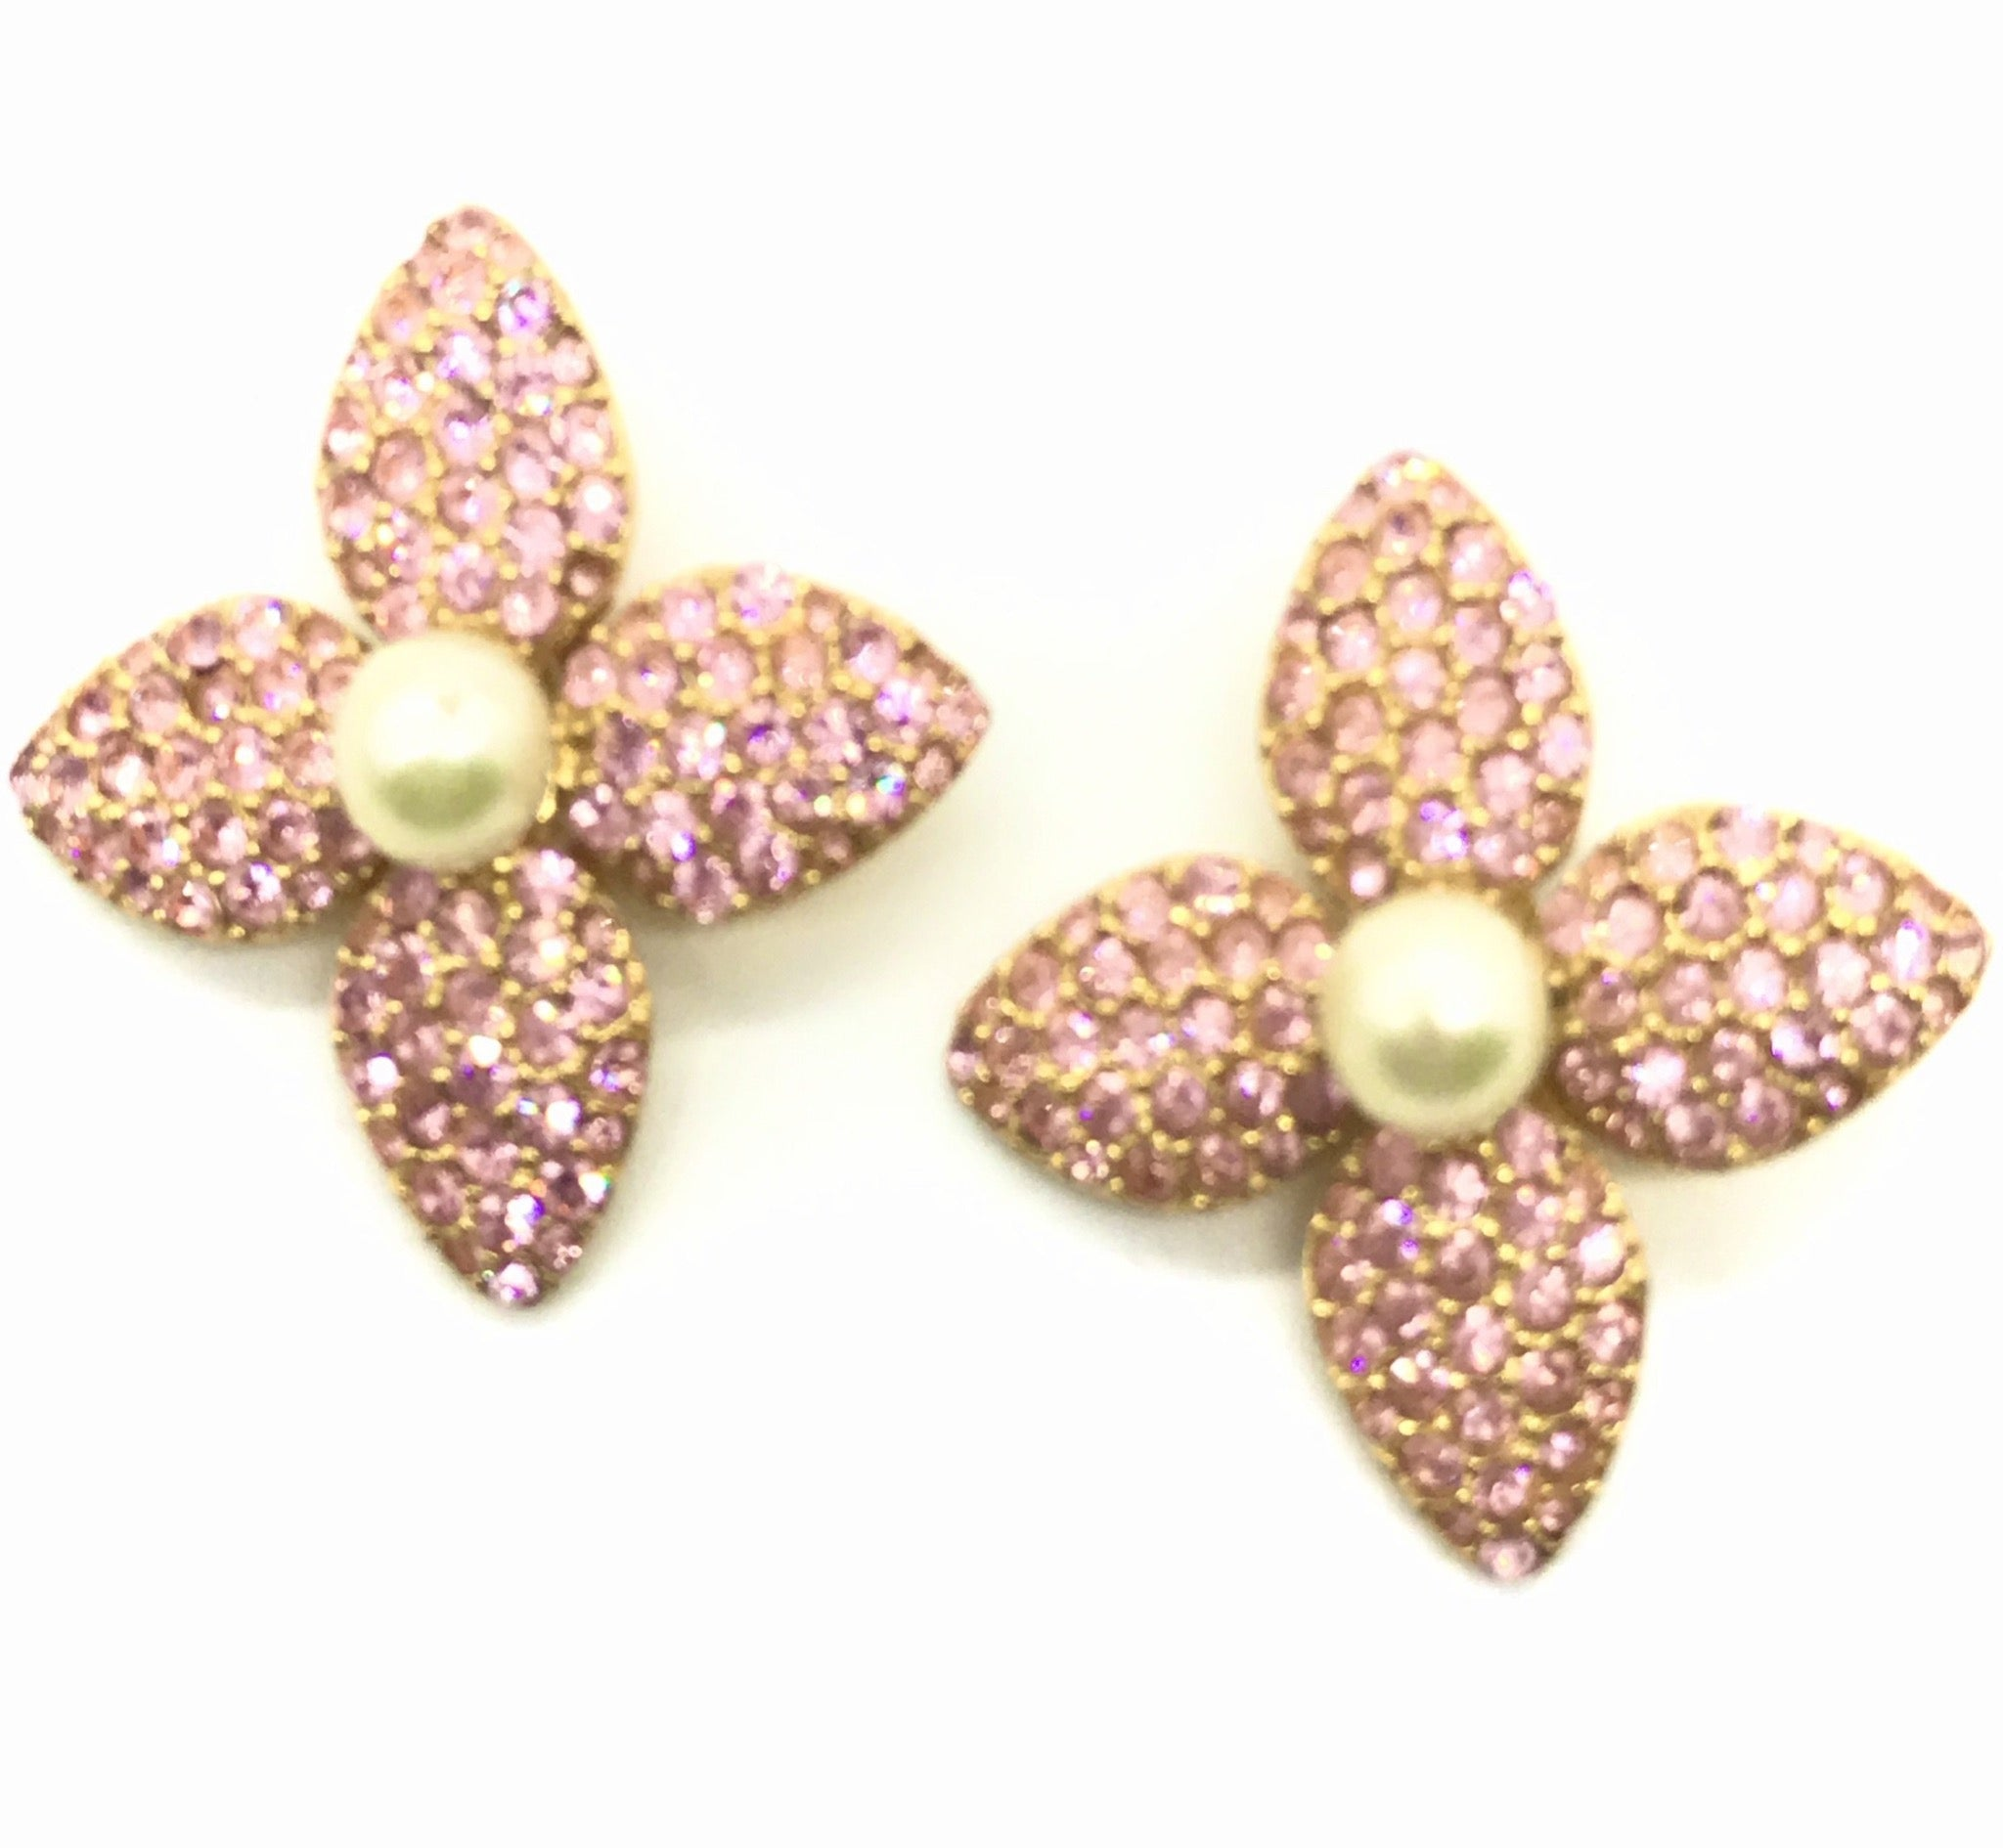 PINK Earrings Pearlized Bubble Gum Pink Vintage 60/'s Retro fashion Mabe pearl Clips Bombshell Glamour party